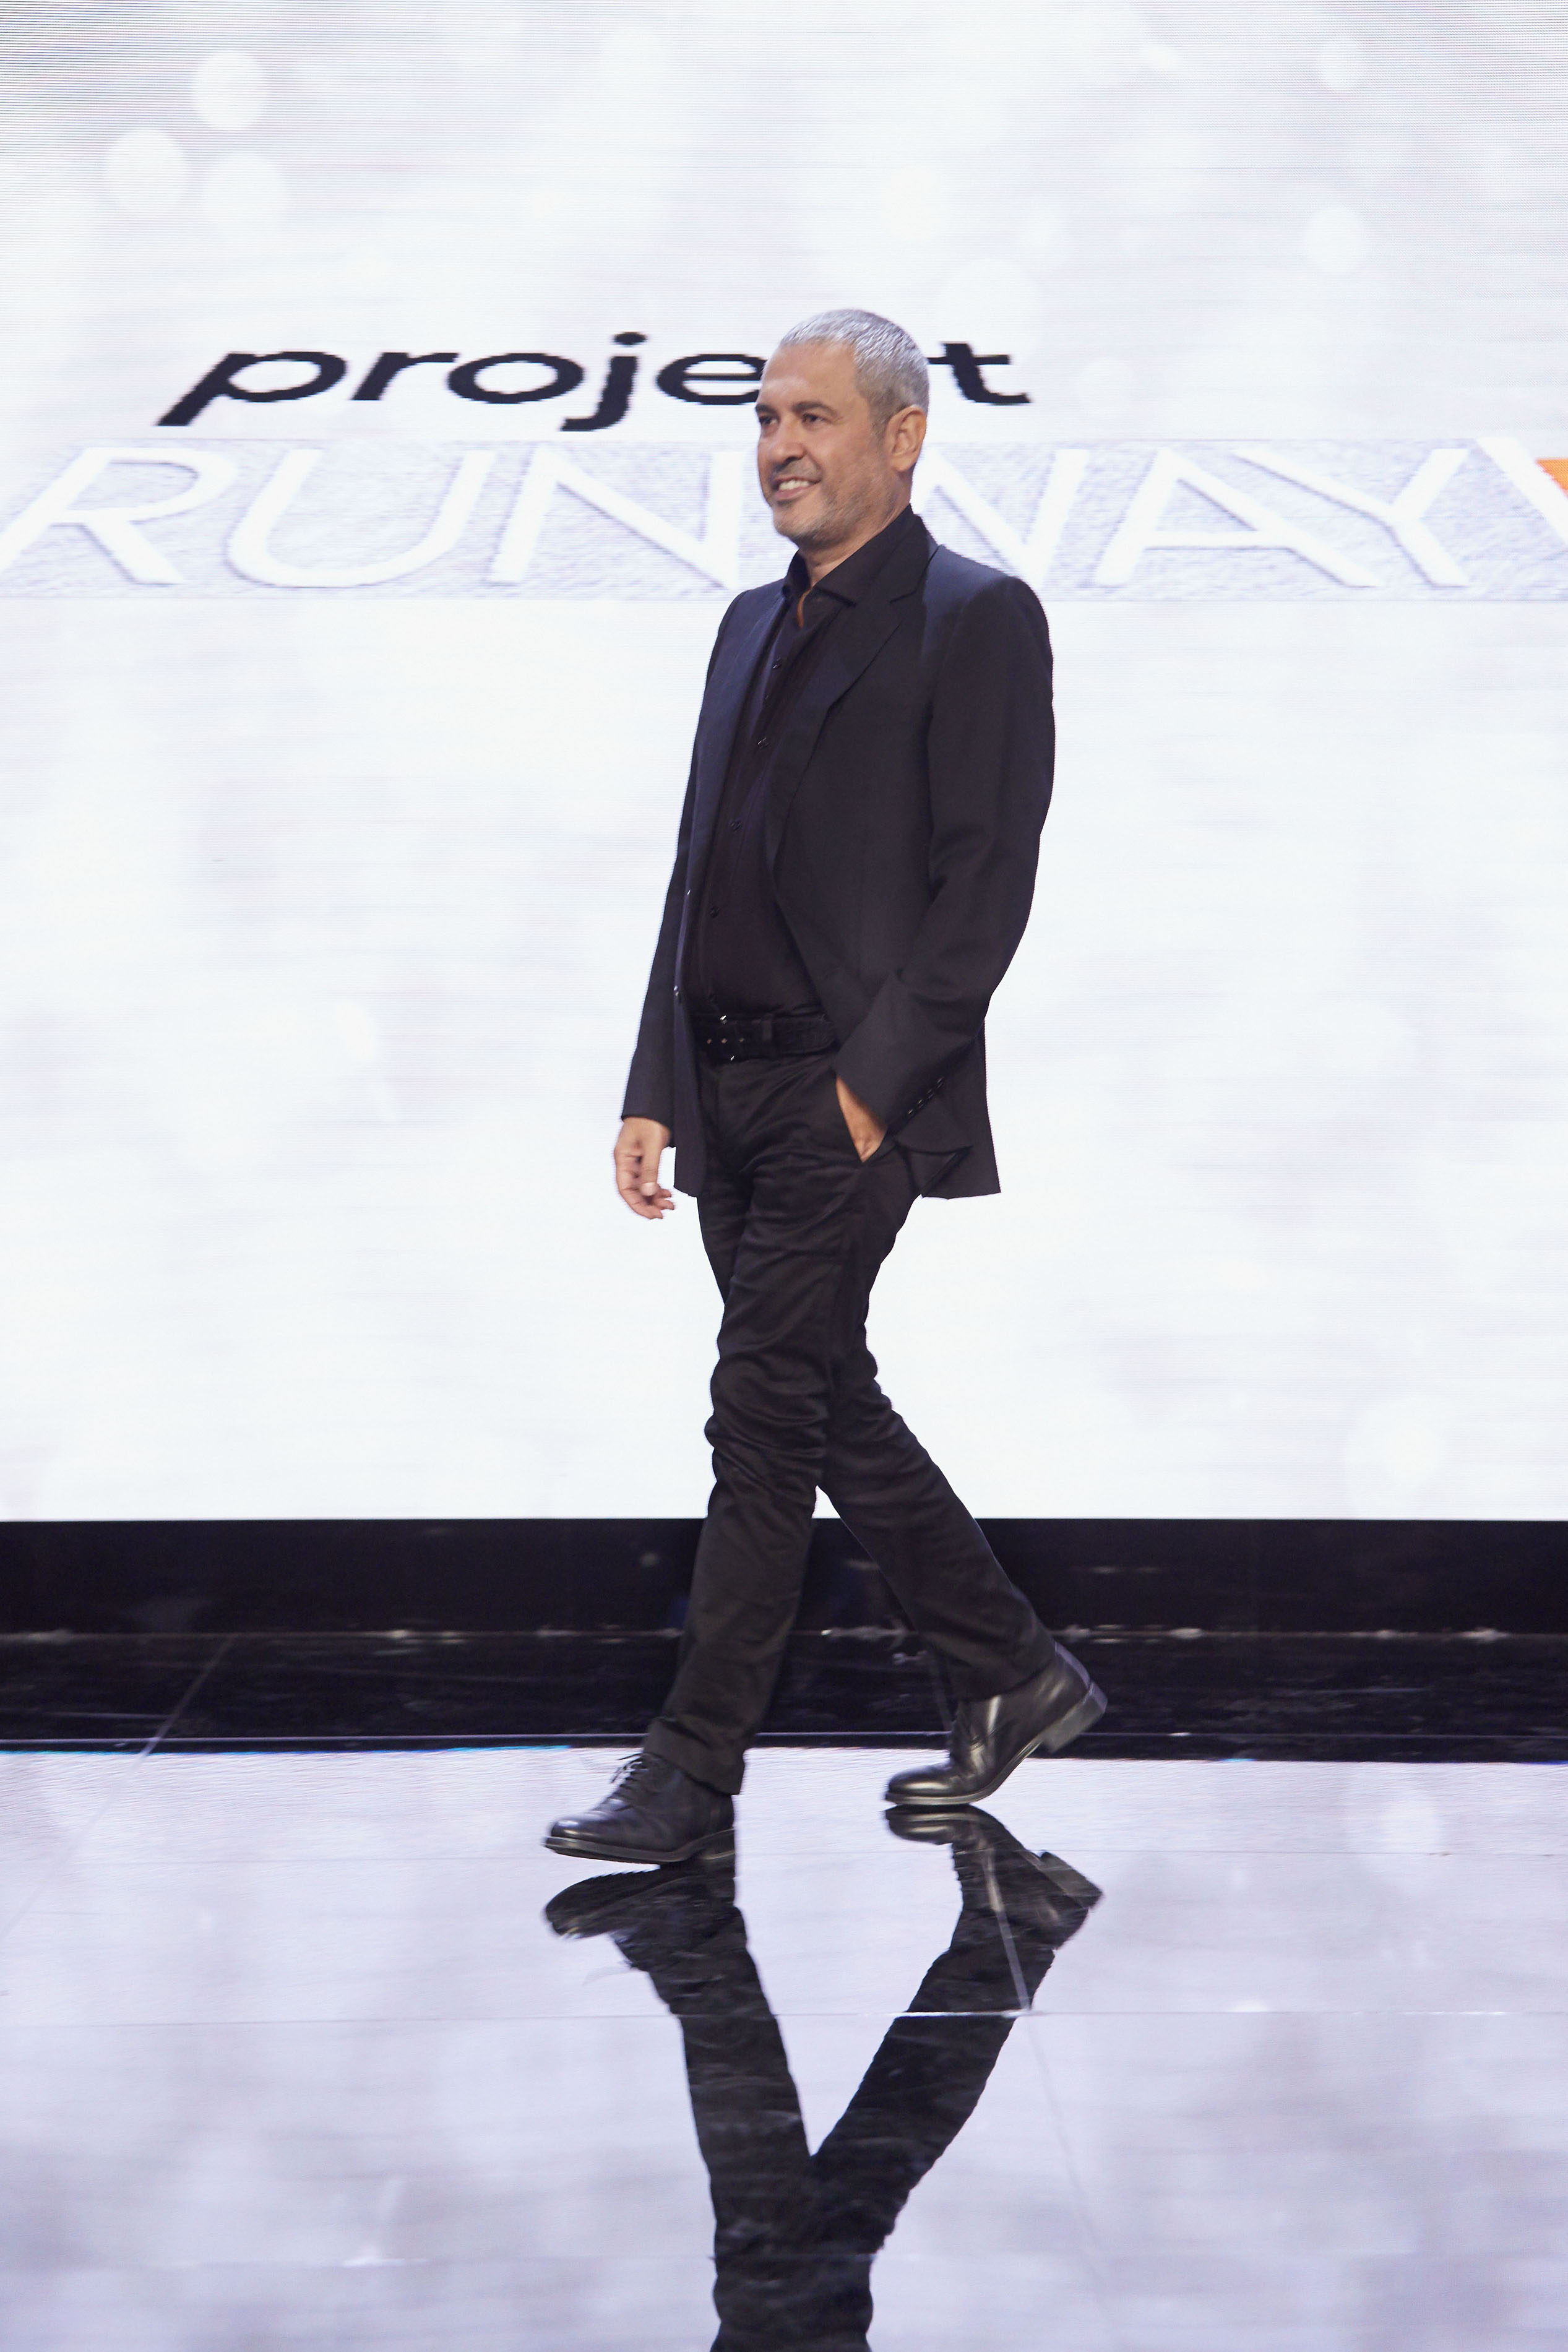 Elie Saab, MBC join for Arabic Project Runway | Programming